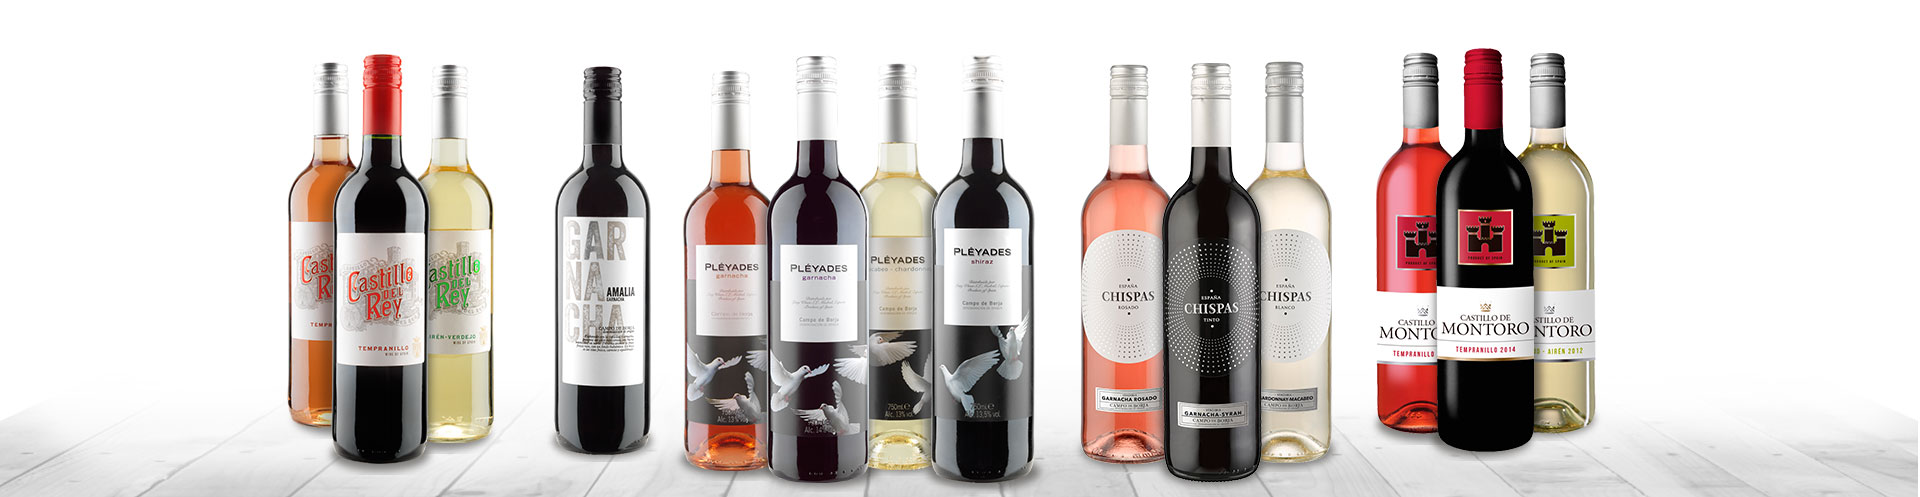 longwines-every-day-spanish-wines